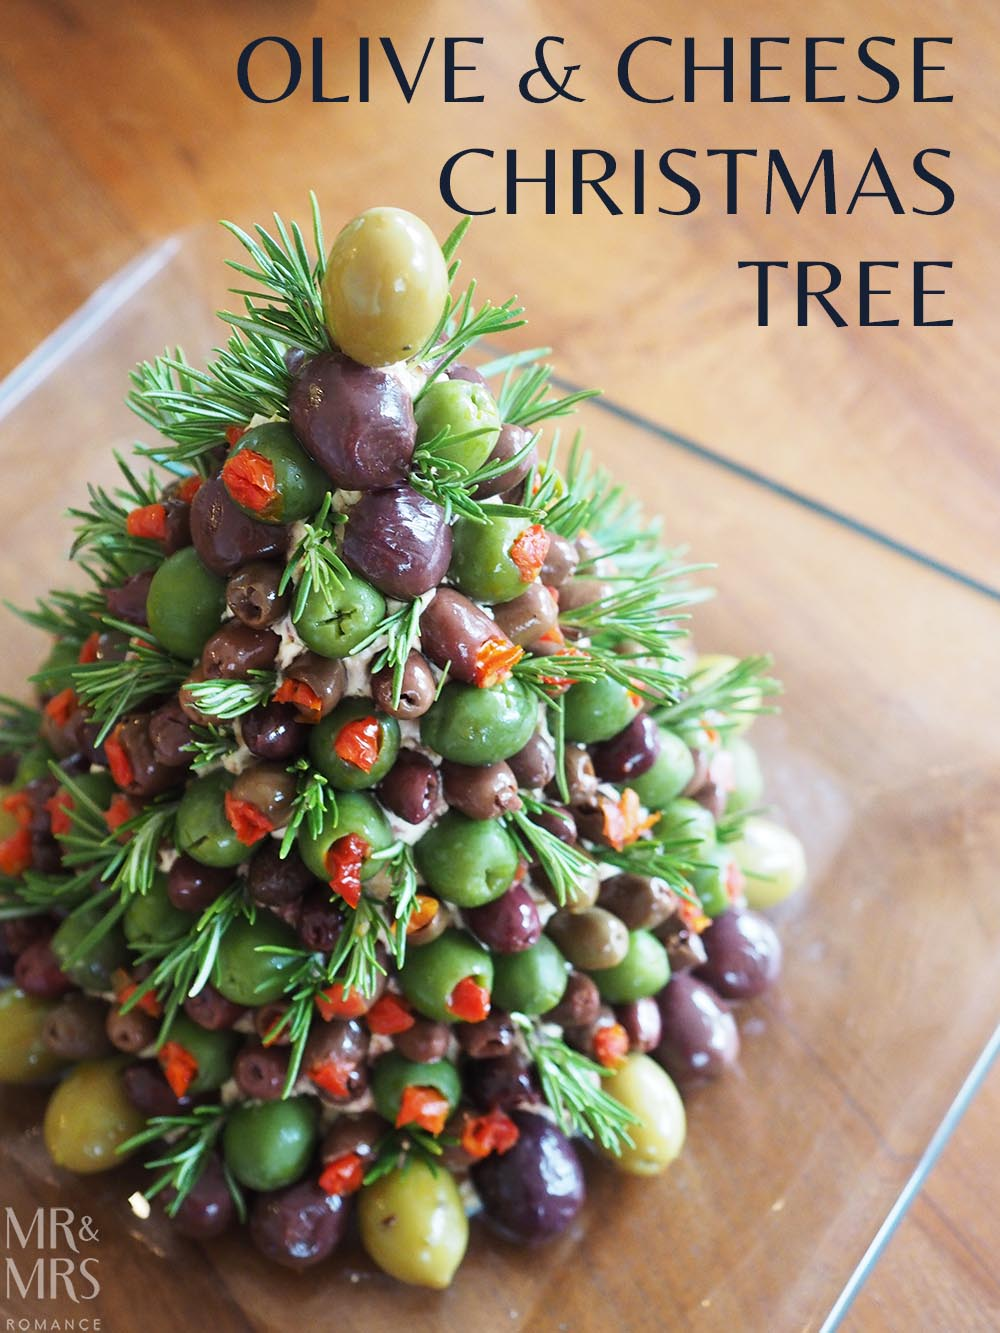 Cheese and Olive Christmas Tree Recipe - Mr & Mrs Romance